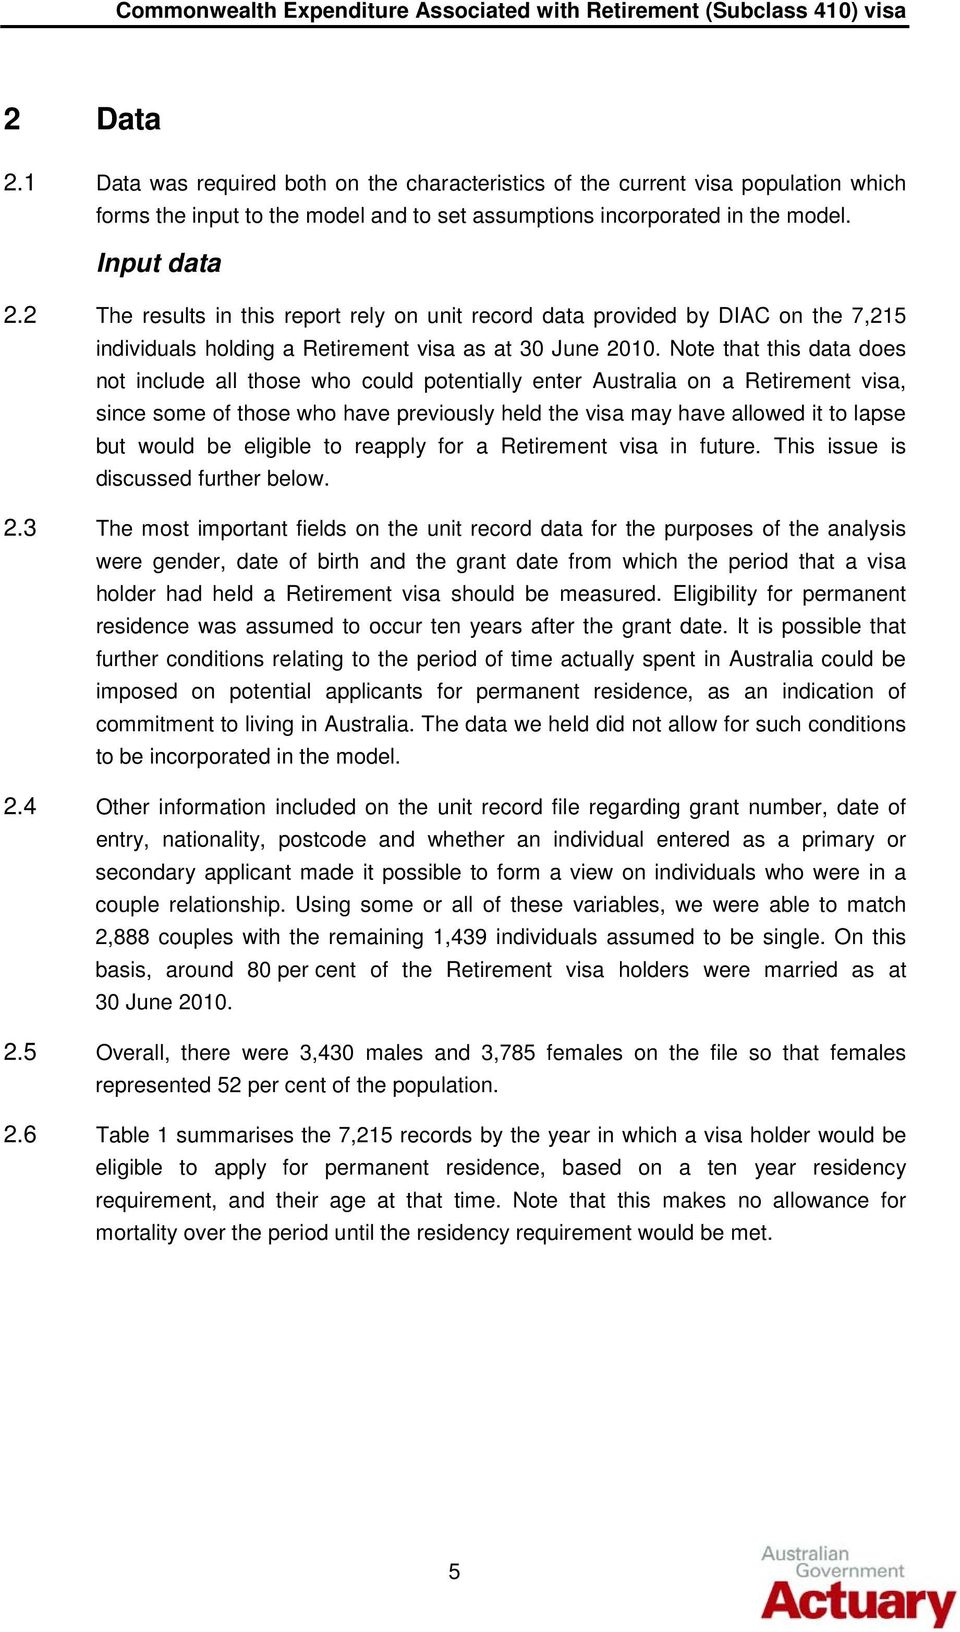 Note that this data does not include all those who could potentially enter Australia on a Retirement visa, since some of those who have previously held the visa may have allowed it to lapse but would